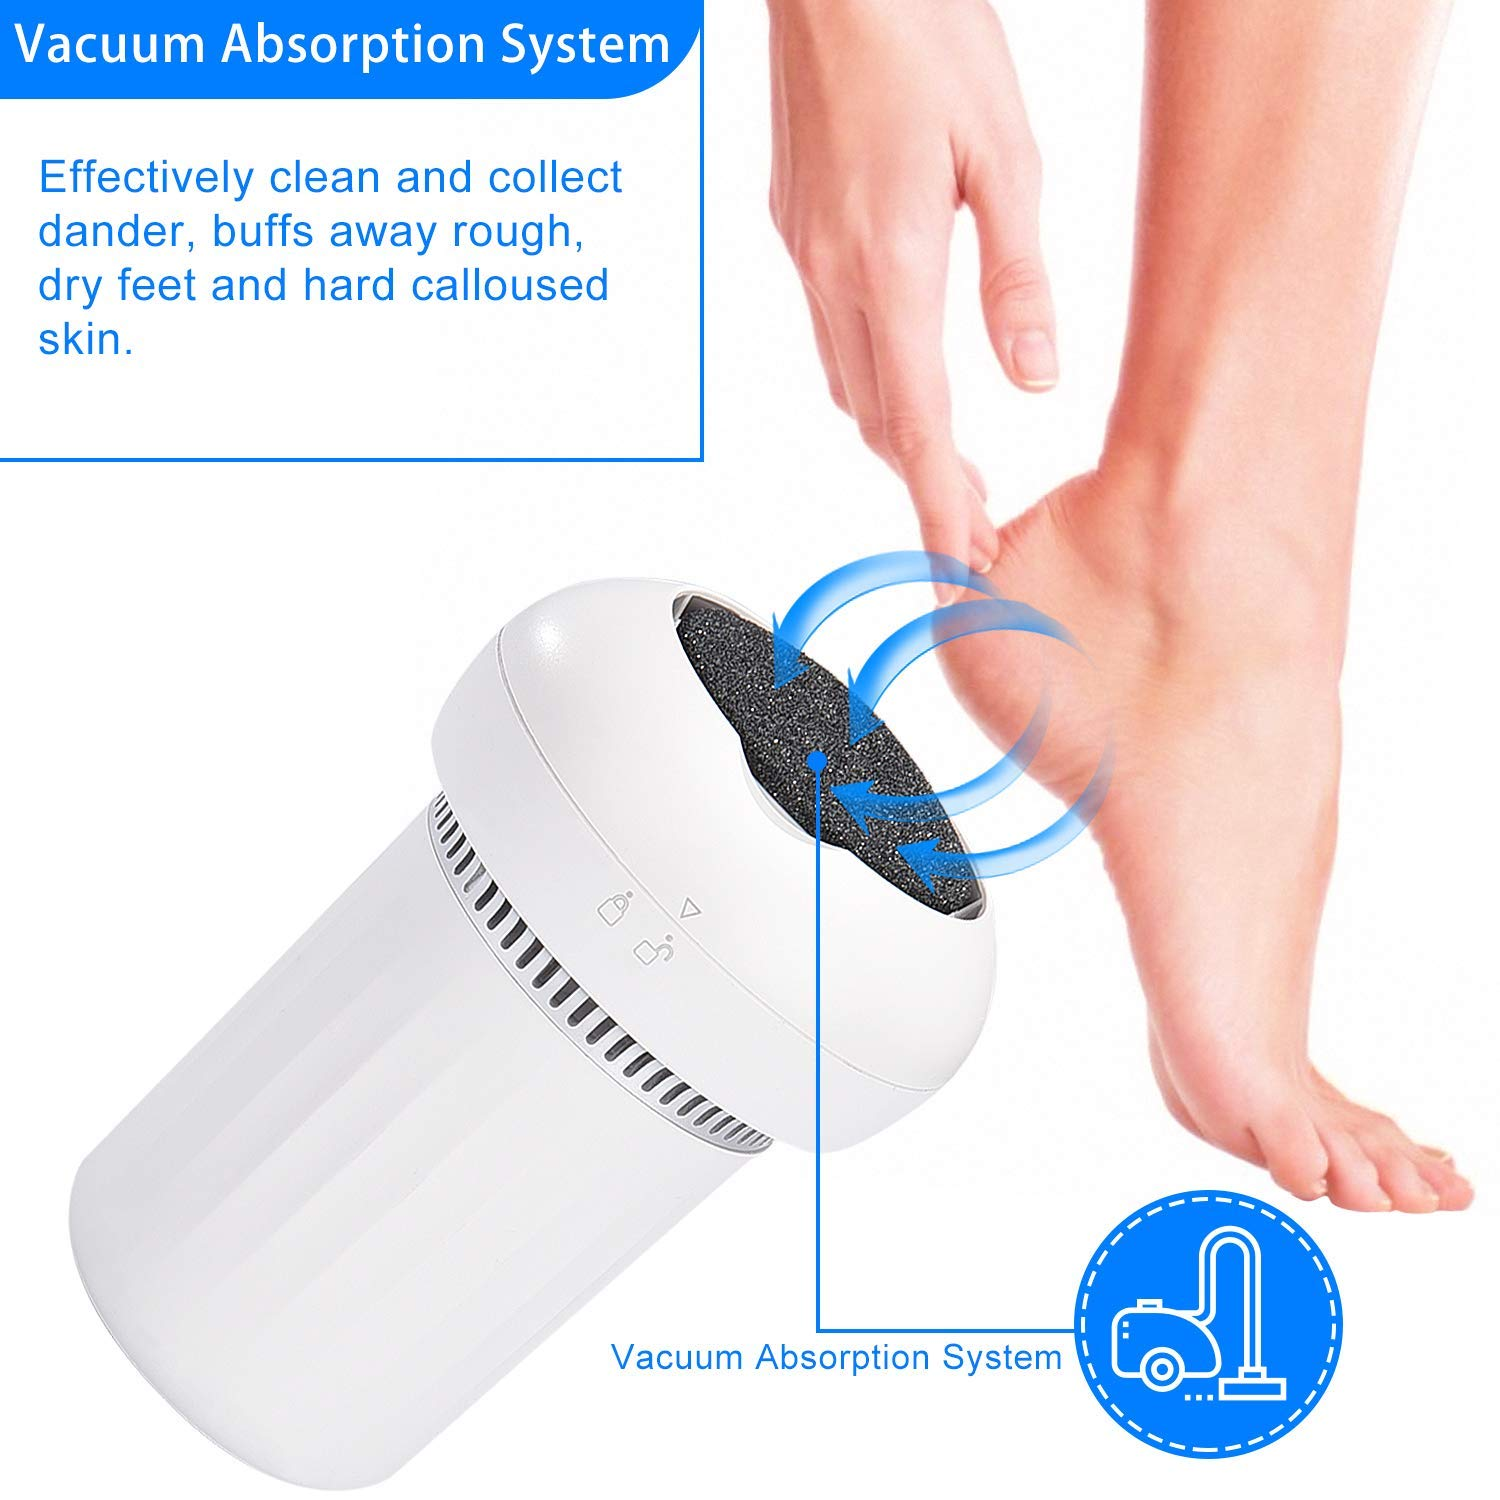 Electric Foot File, COSYONALL Callus Remover w/Built-in Vacuum Removes Dead Skin on Feet Heel Knee Elbow Hand, Efficient Callus Grinder 3 Speed 3 Buffing Pads, Pedicures Footcare Tool for Home Travel